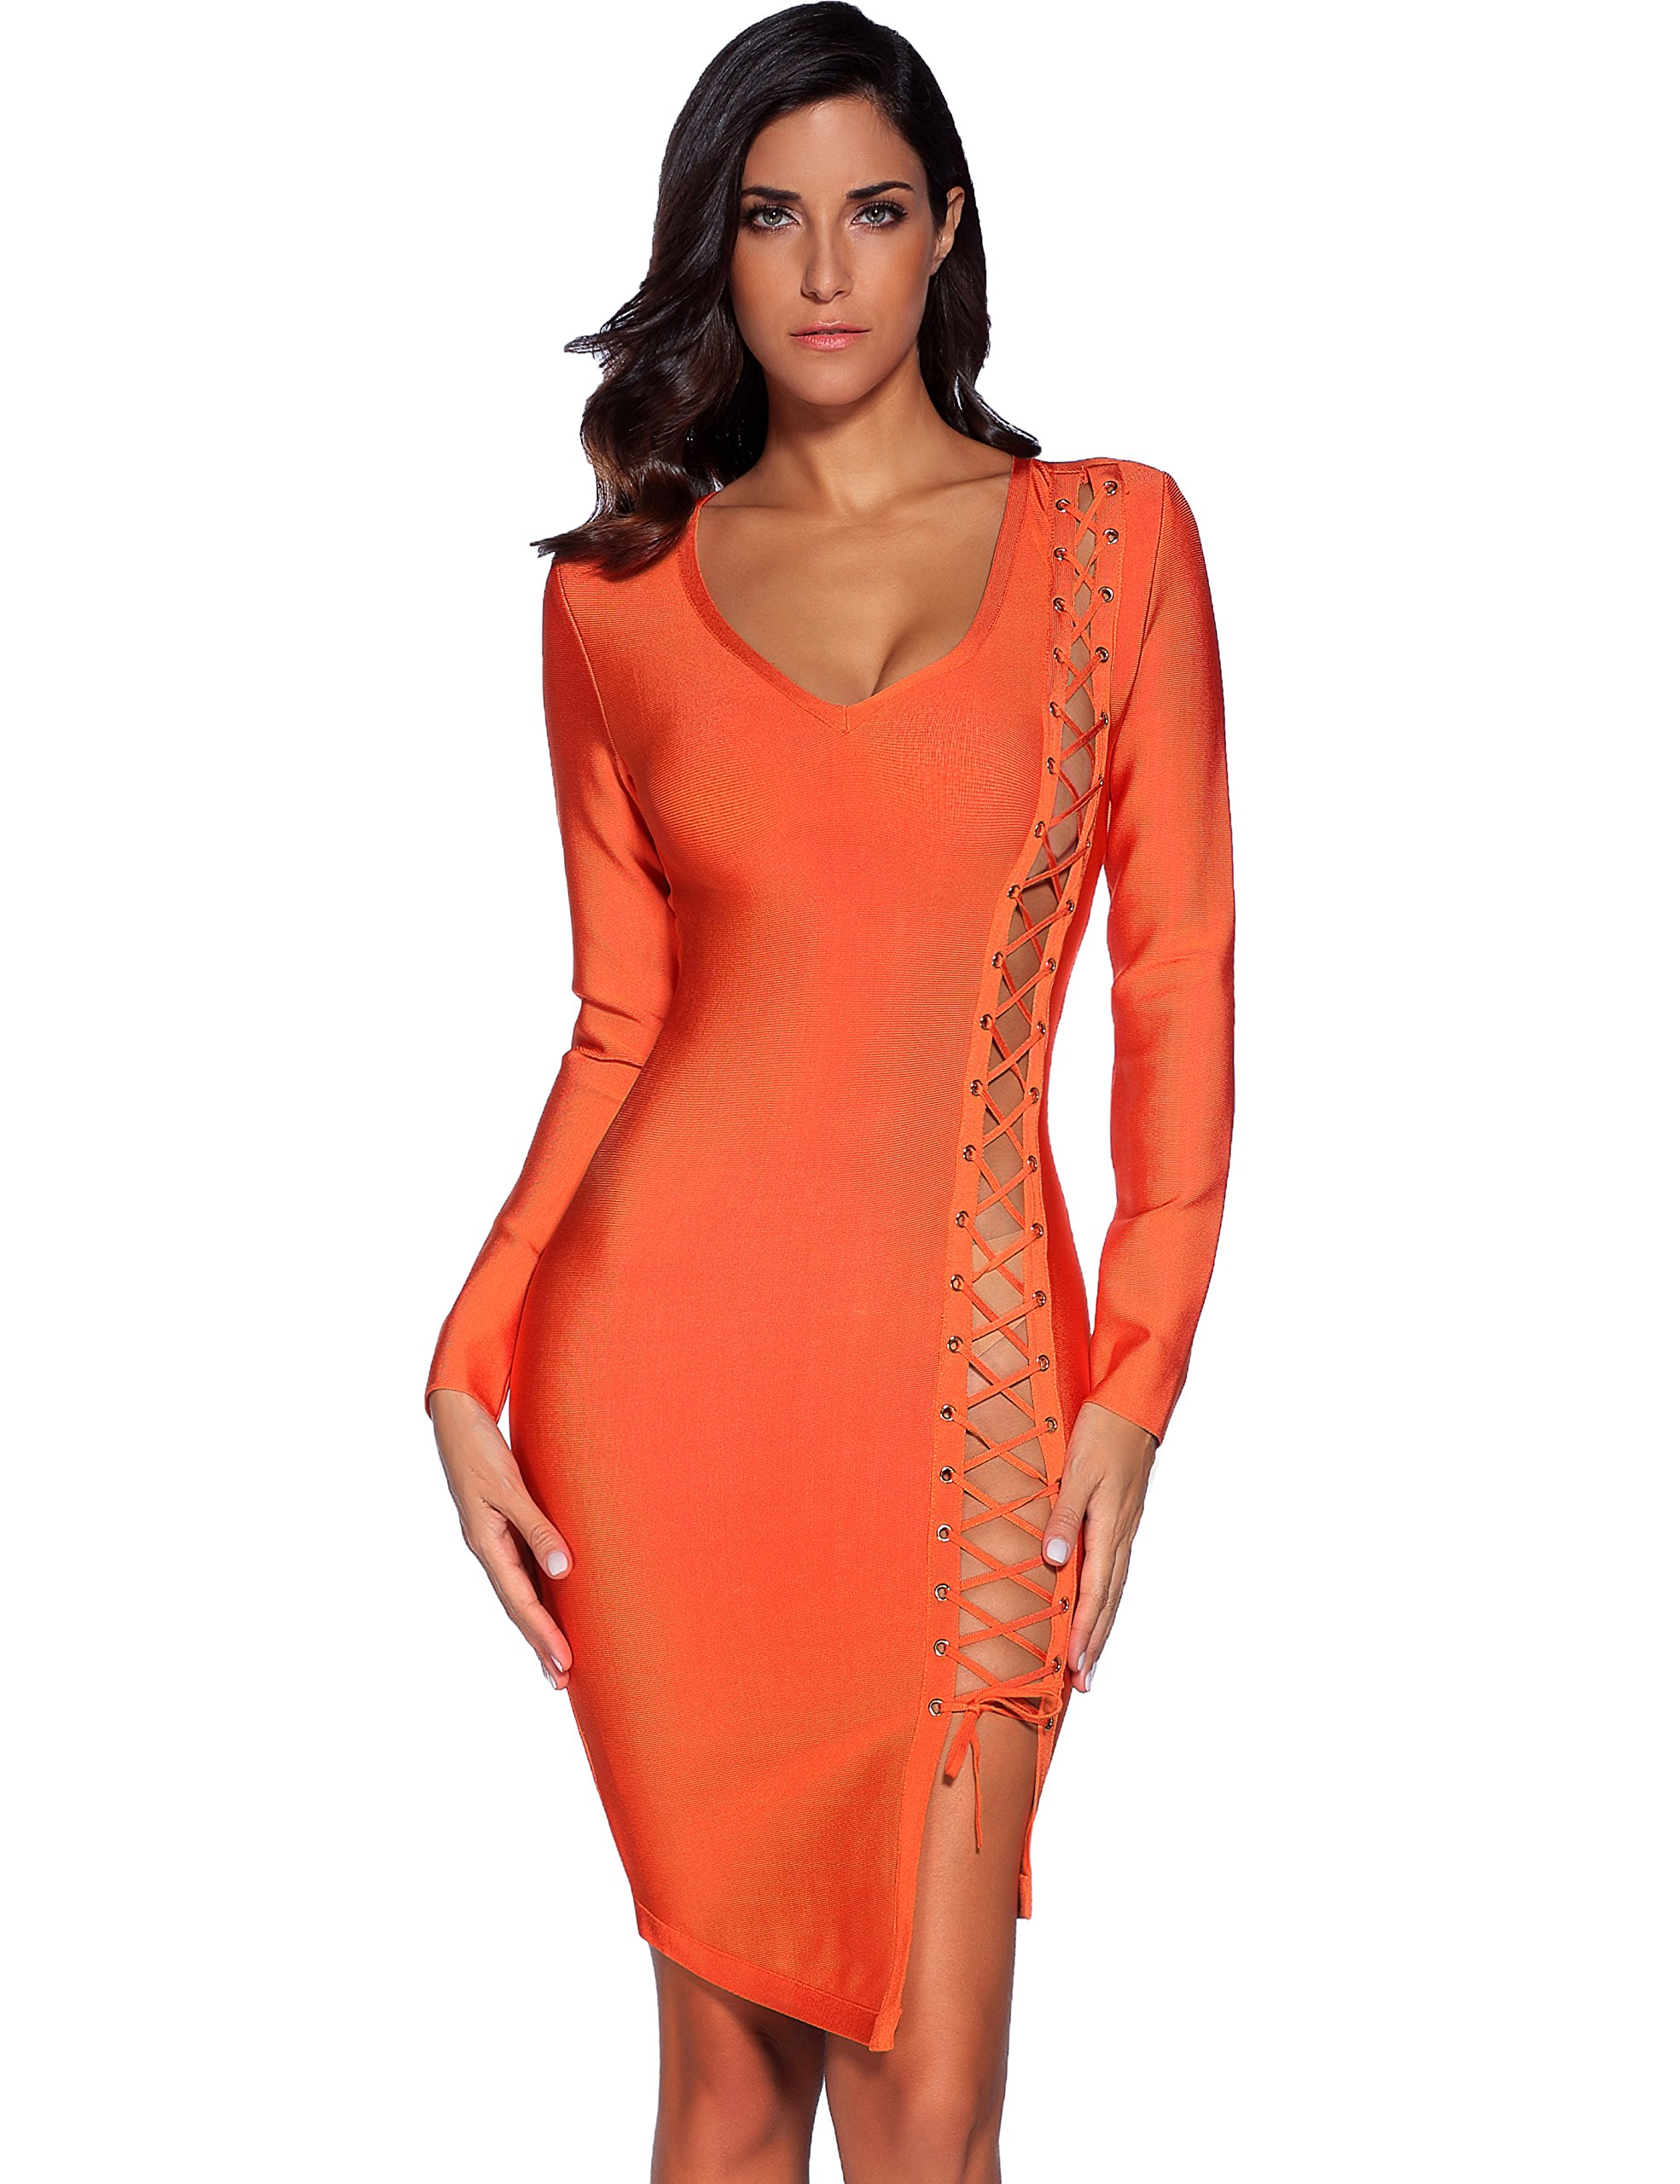 Available at Amazon: Meilun Women's Lace Up Long Sleeve Bandage Bodycon Dress